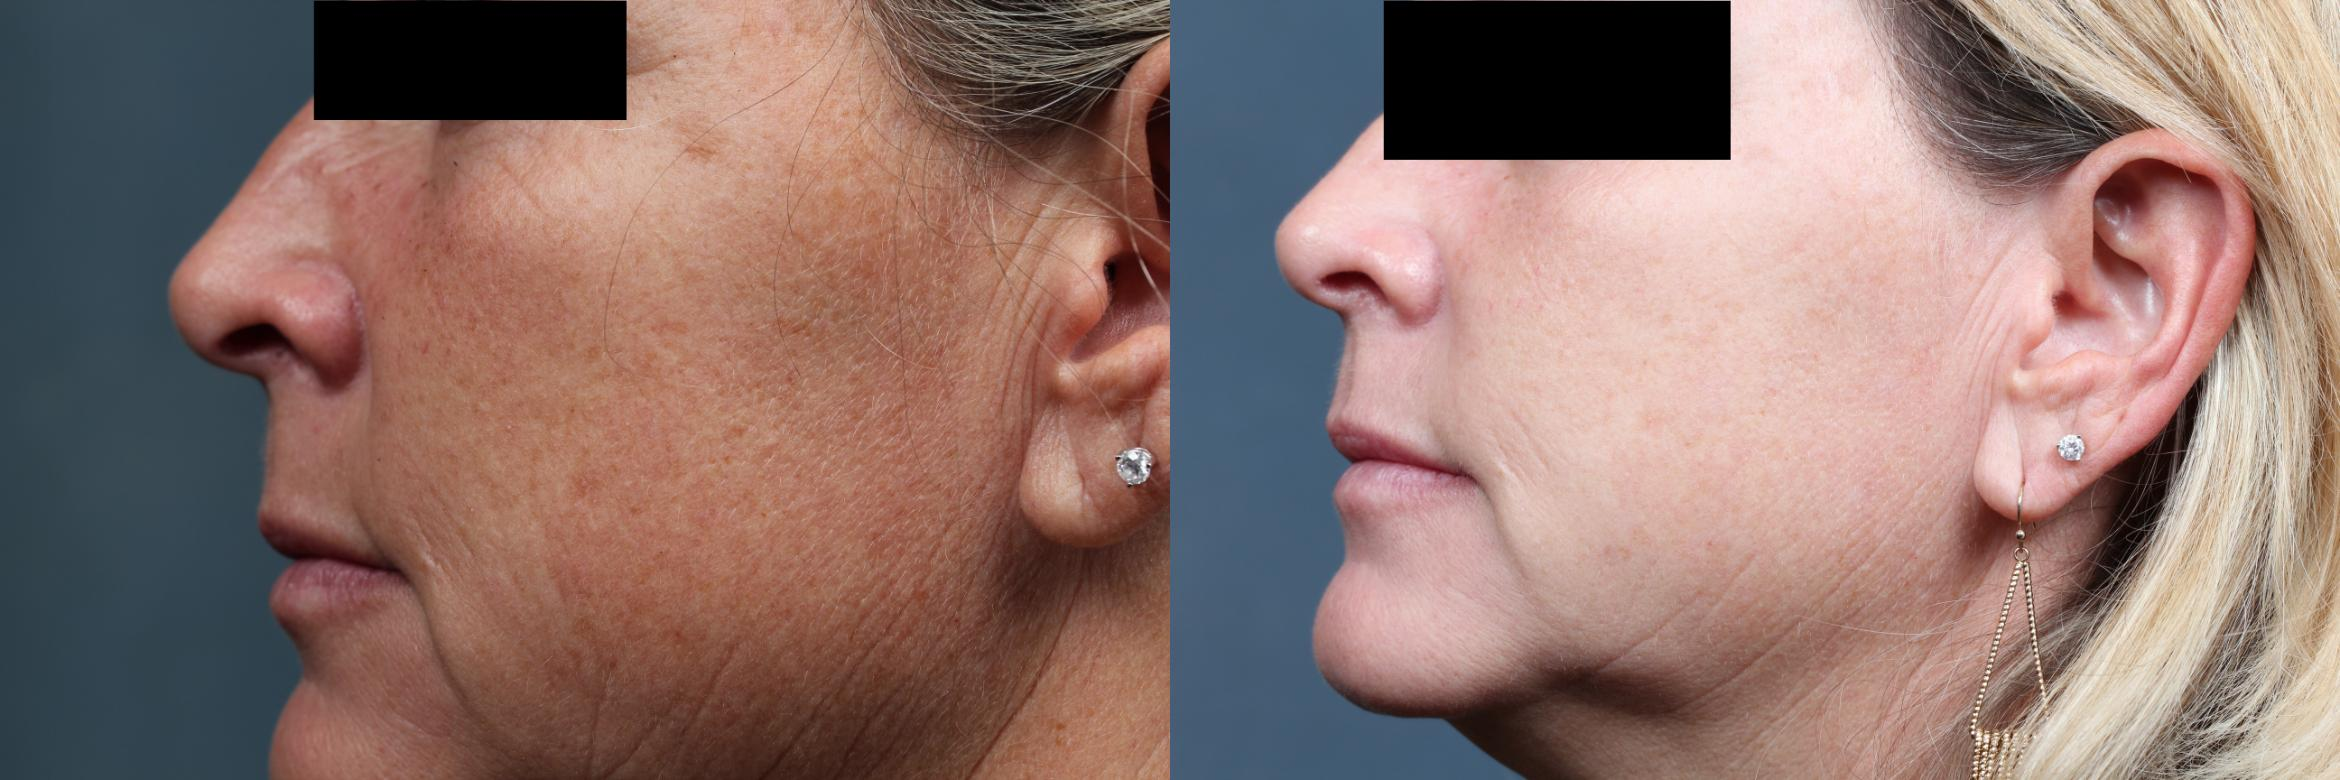 PICO Genesis Laser Treatment Case 700 Before & After Left Side | Louisville, KY | CaloSpa® Rejuvenation Center